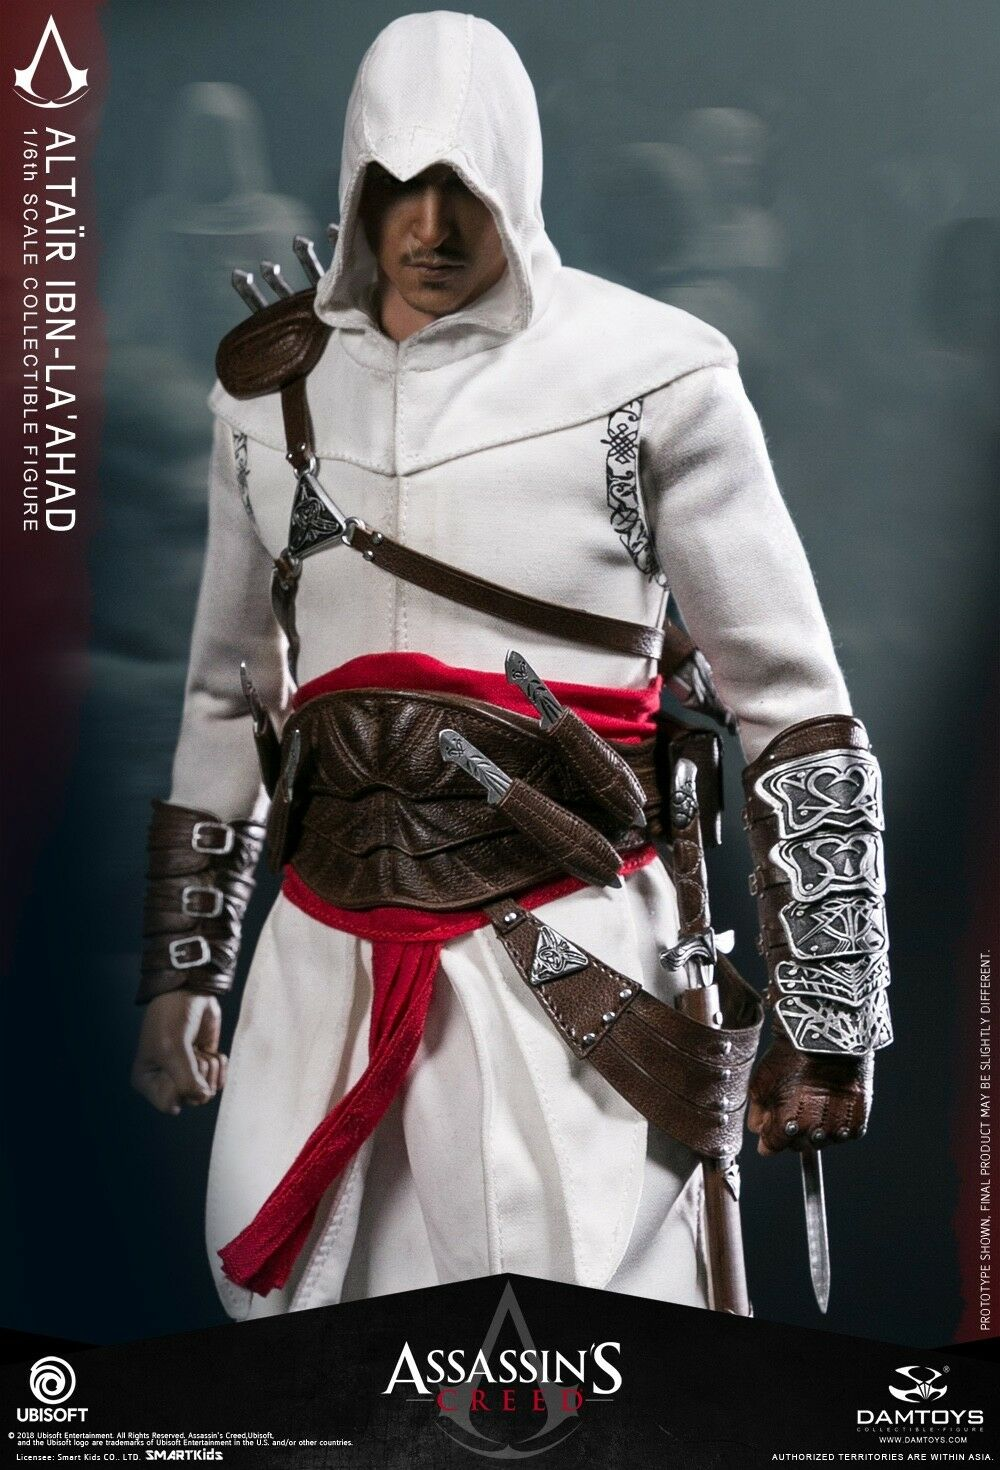 DAM TOYS DMS005 Classic Game Assassin's Creed I Altair the Mentor 1/6 Figure